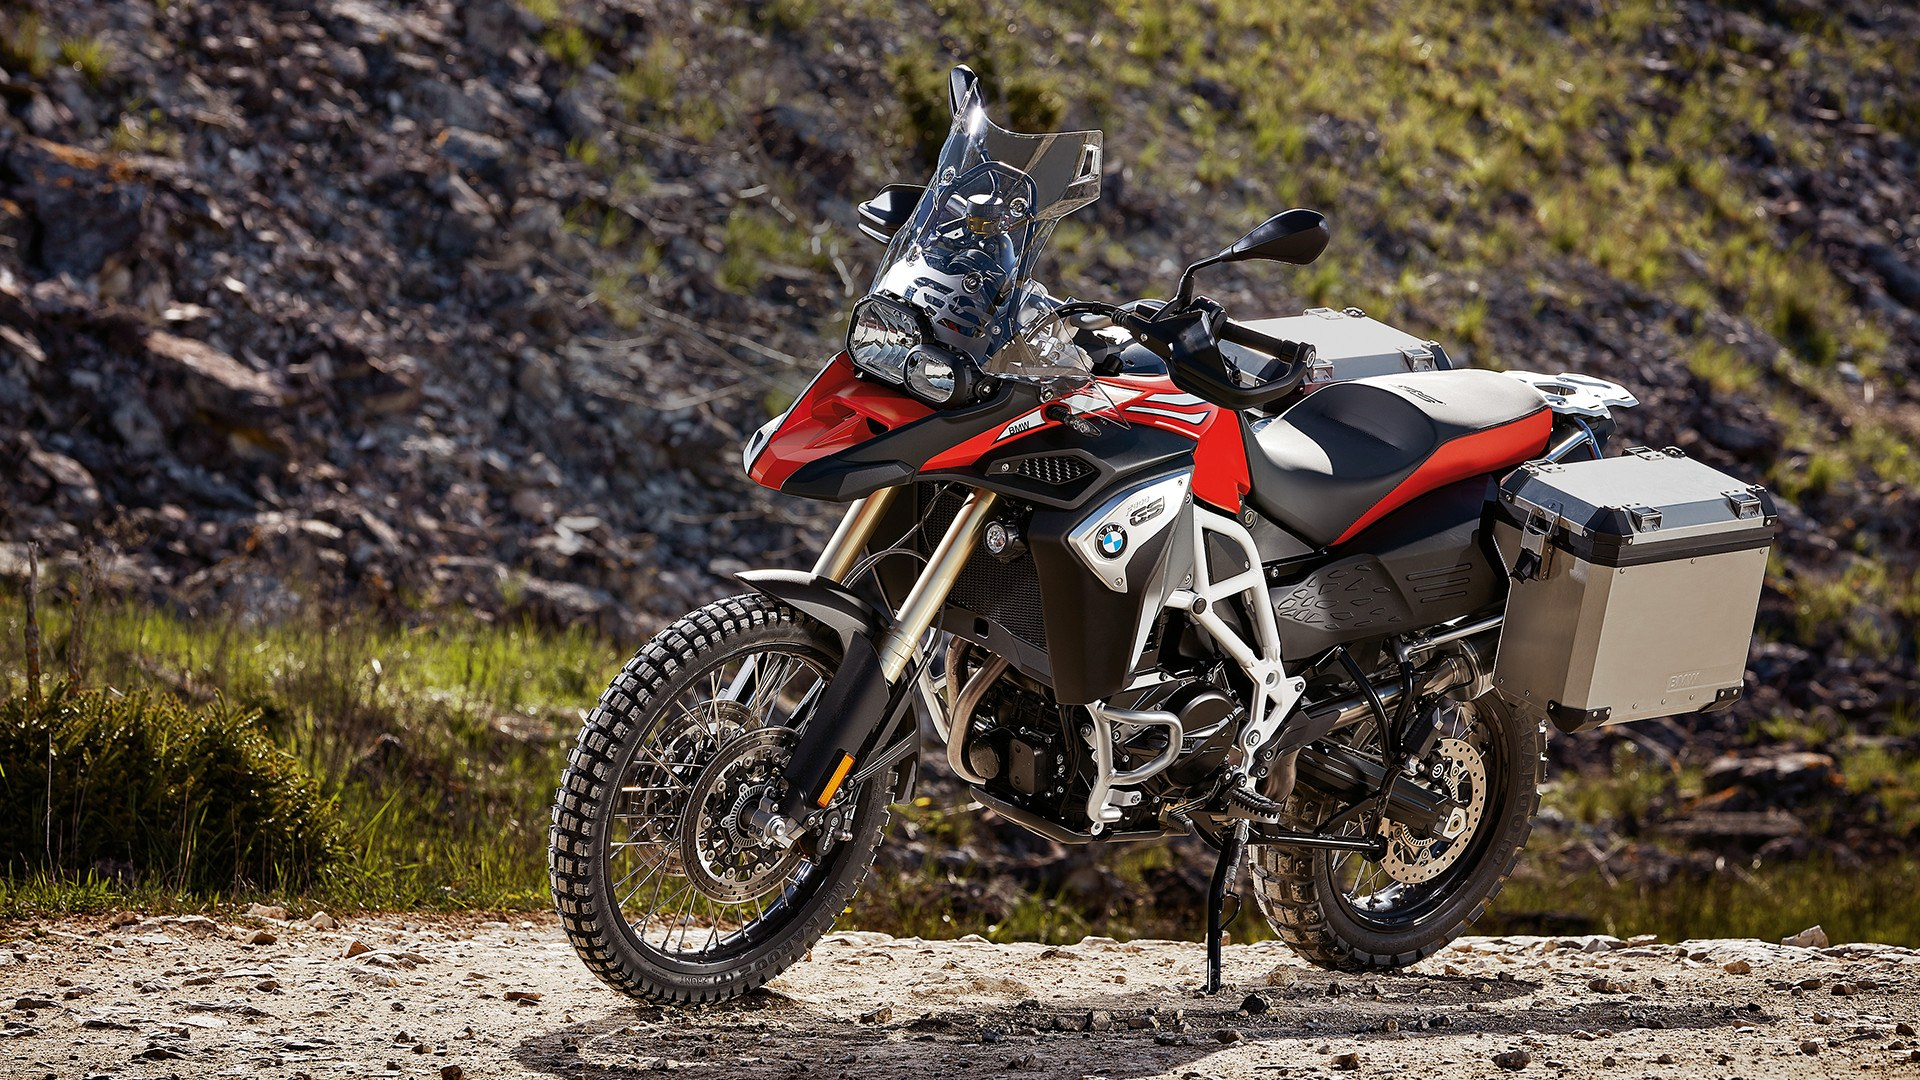 2017 BMW F 800 GS Adventure in Orange, California